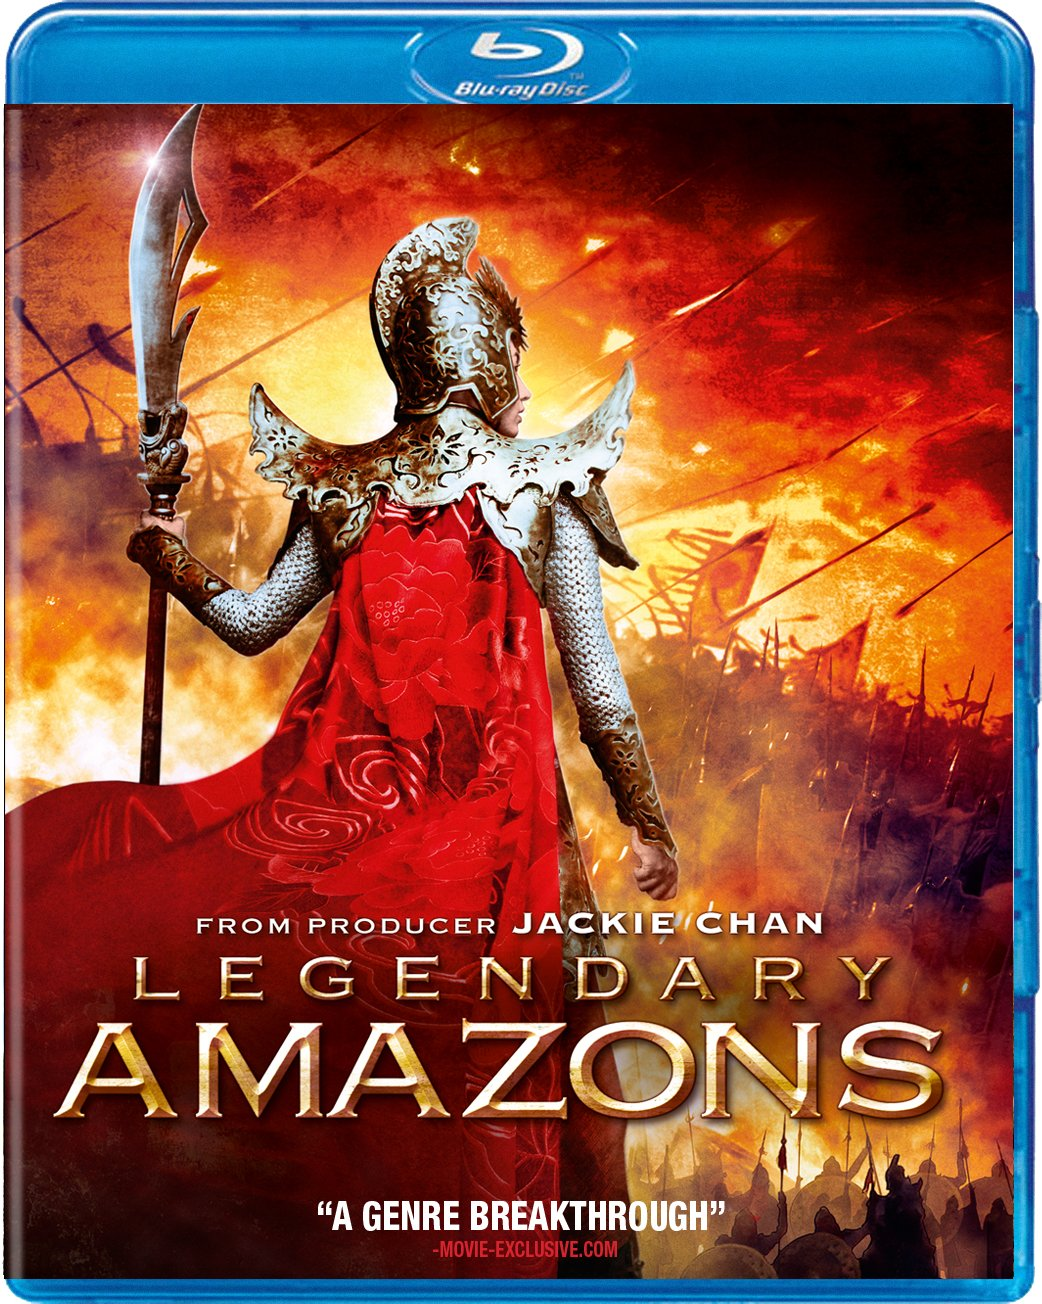 legendary amazons - photo #4